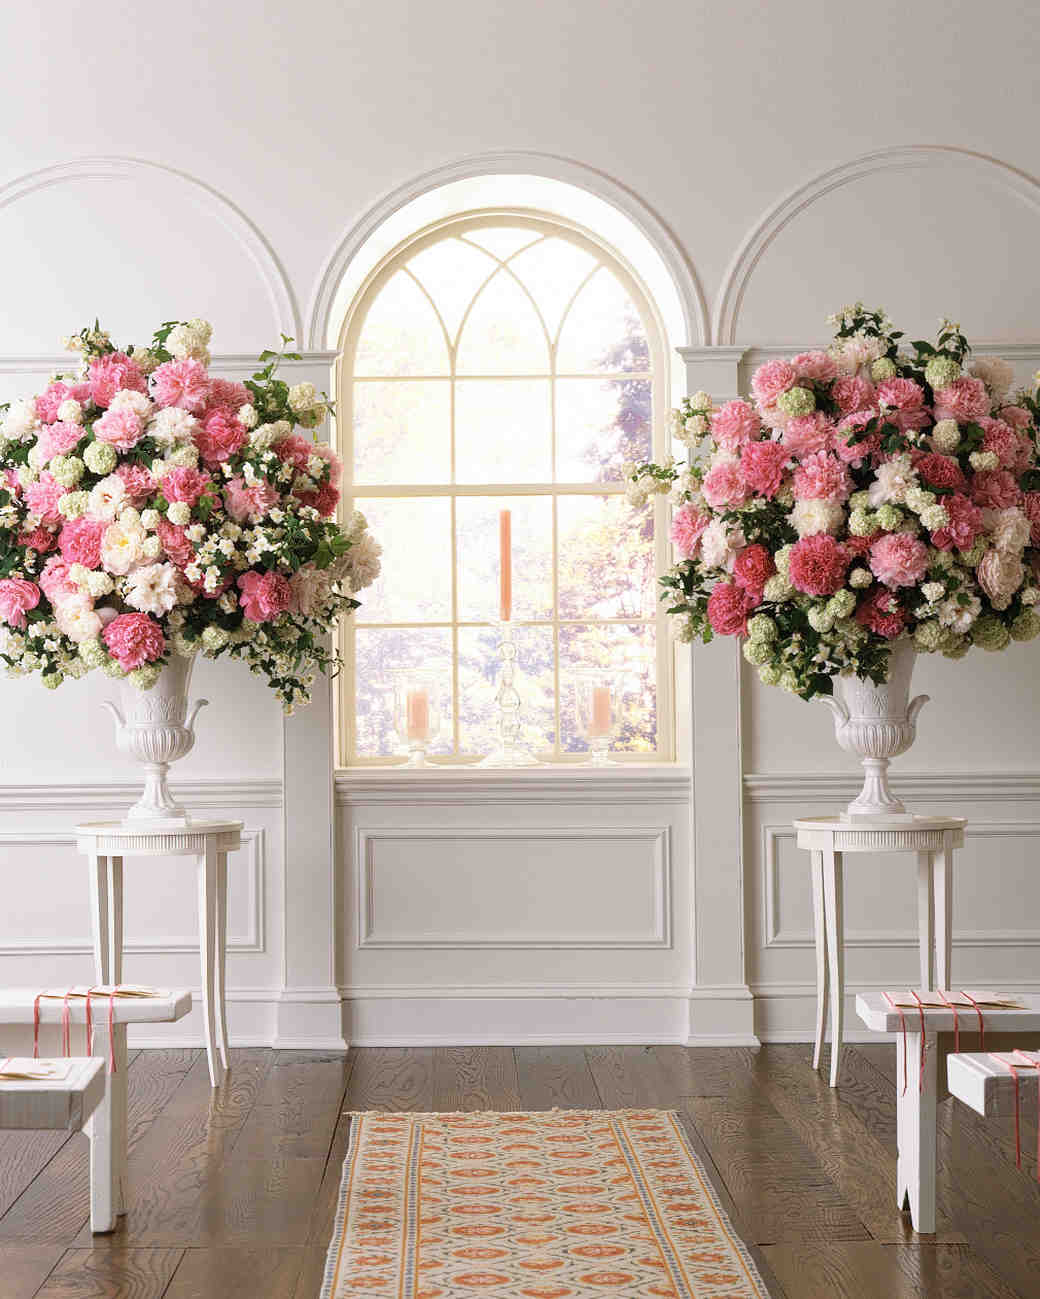 Best 20 Wedding Altars Ideas On Pinterest: Peony-Inspired Wedding Ideas